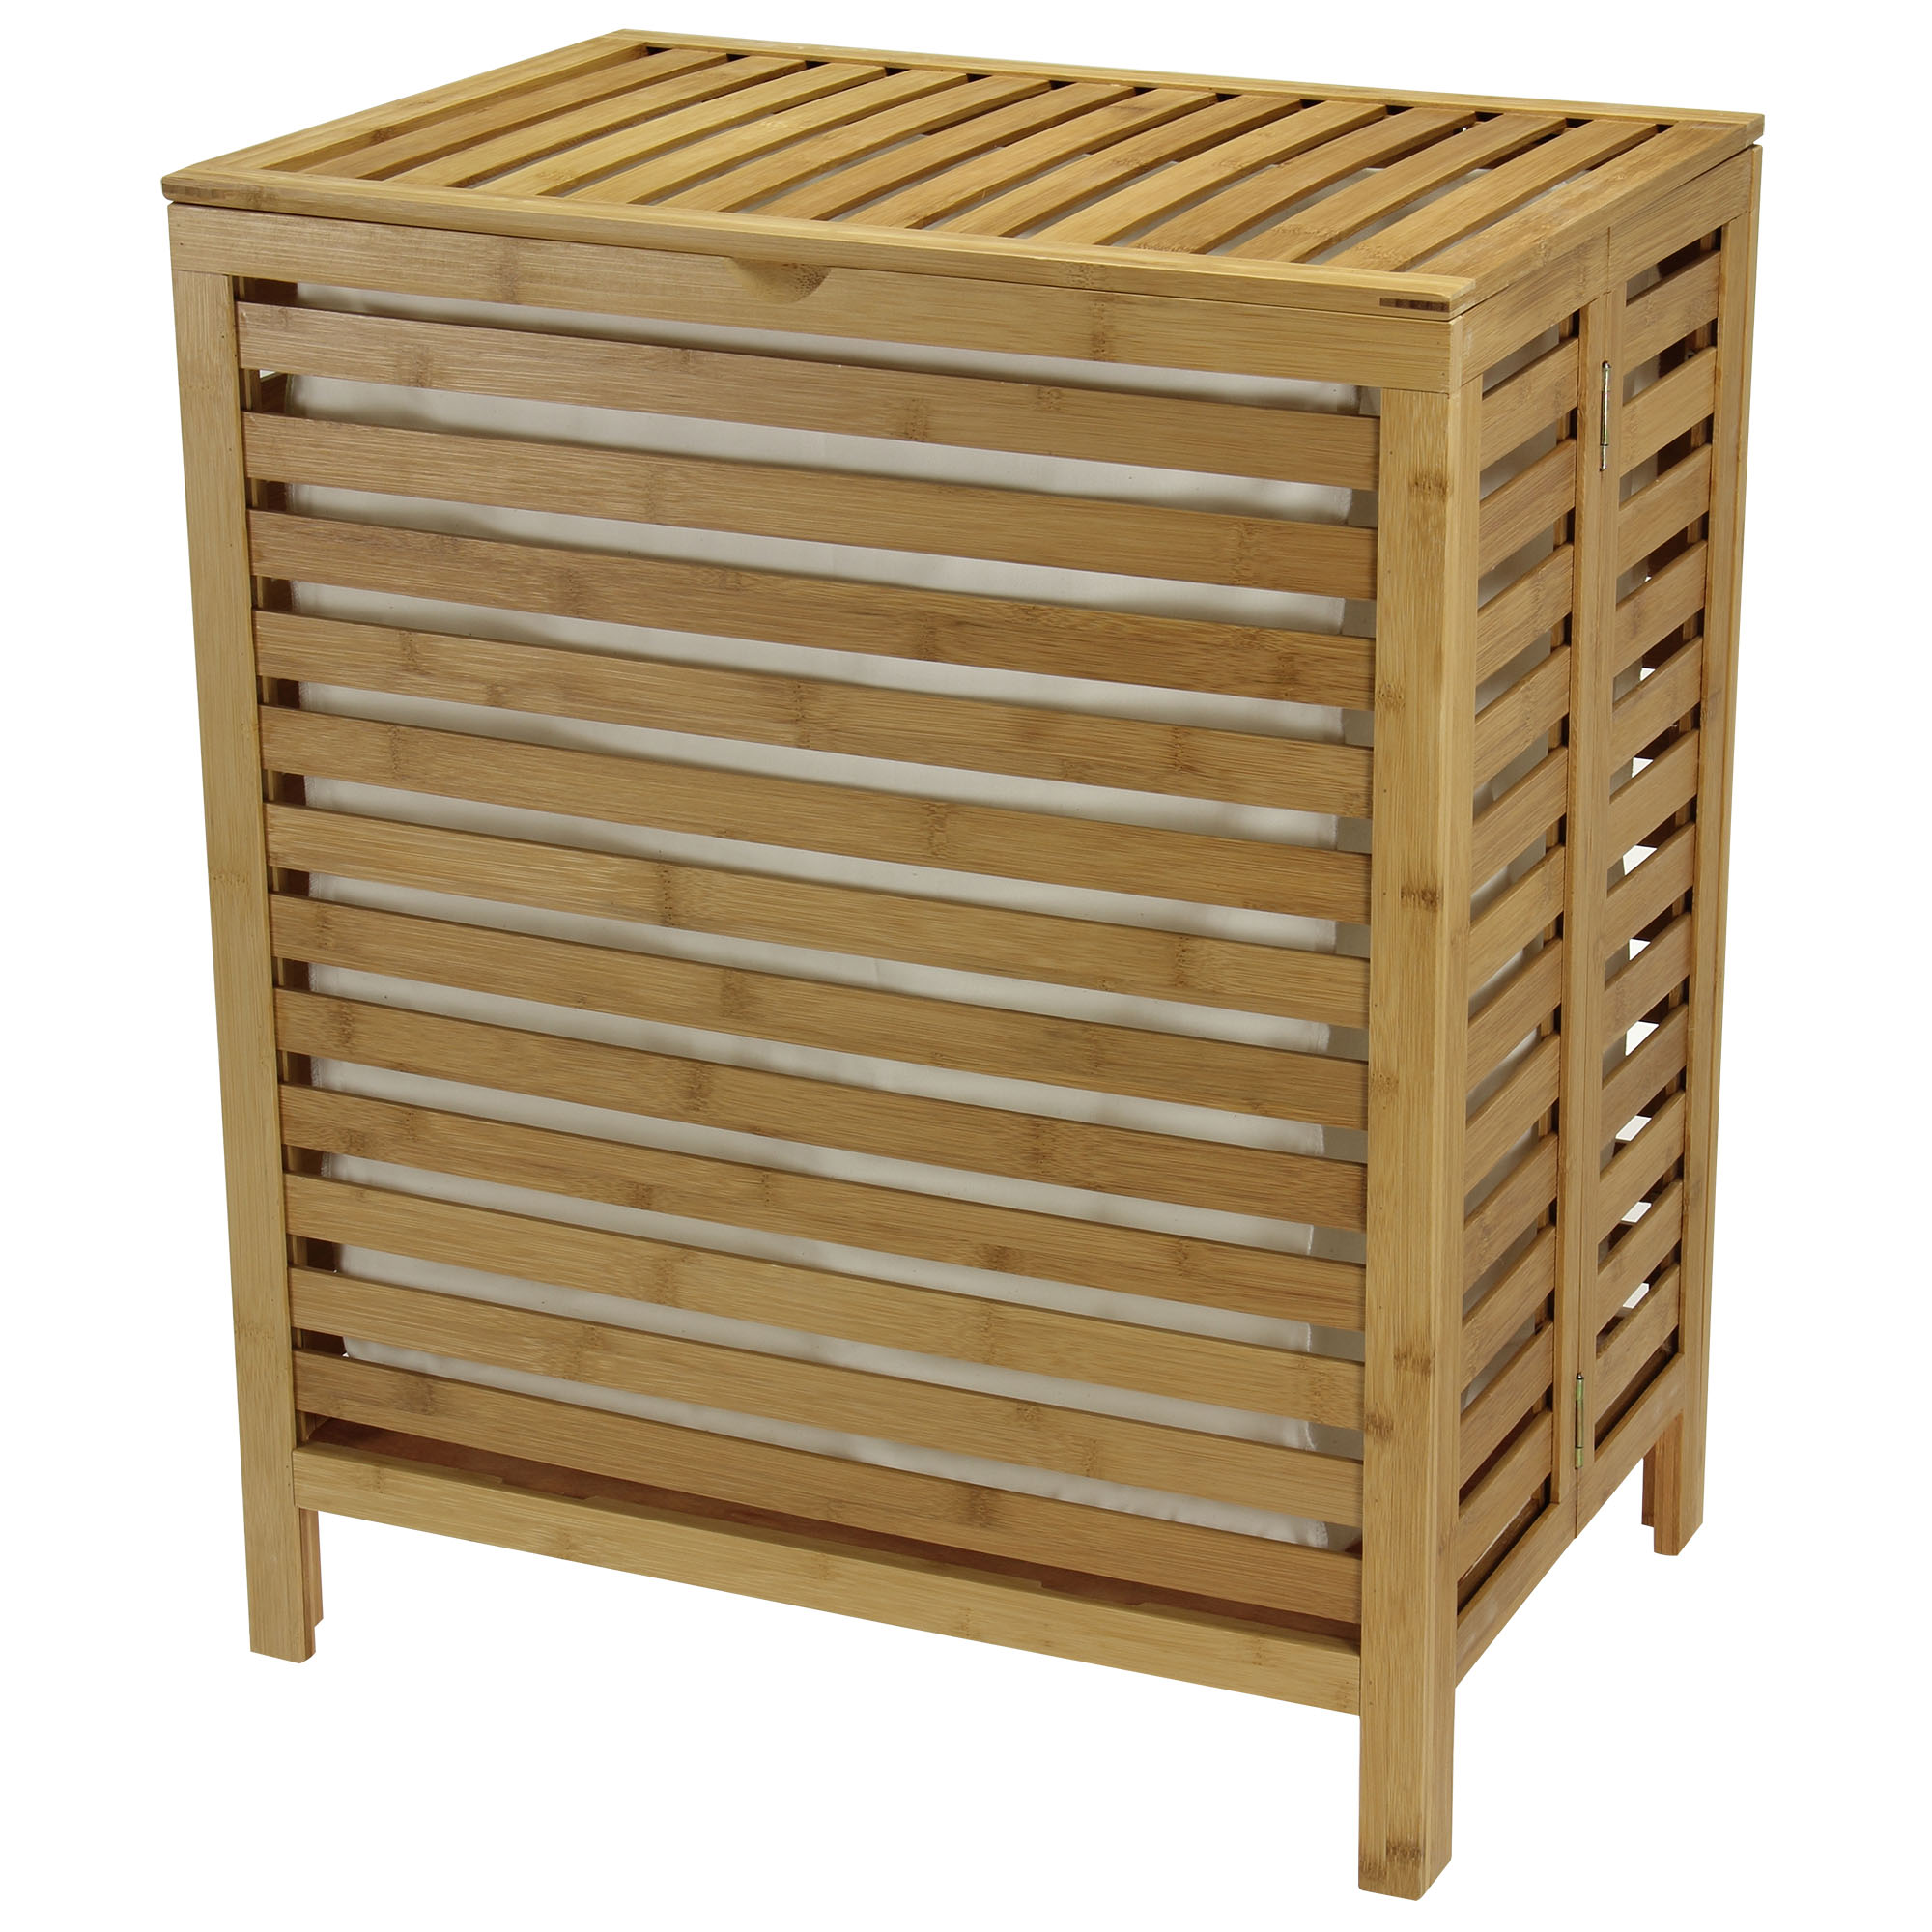 Natural Bamboo Open-Slat Hamper